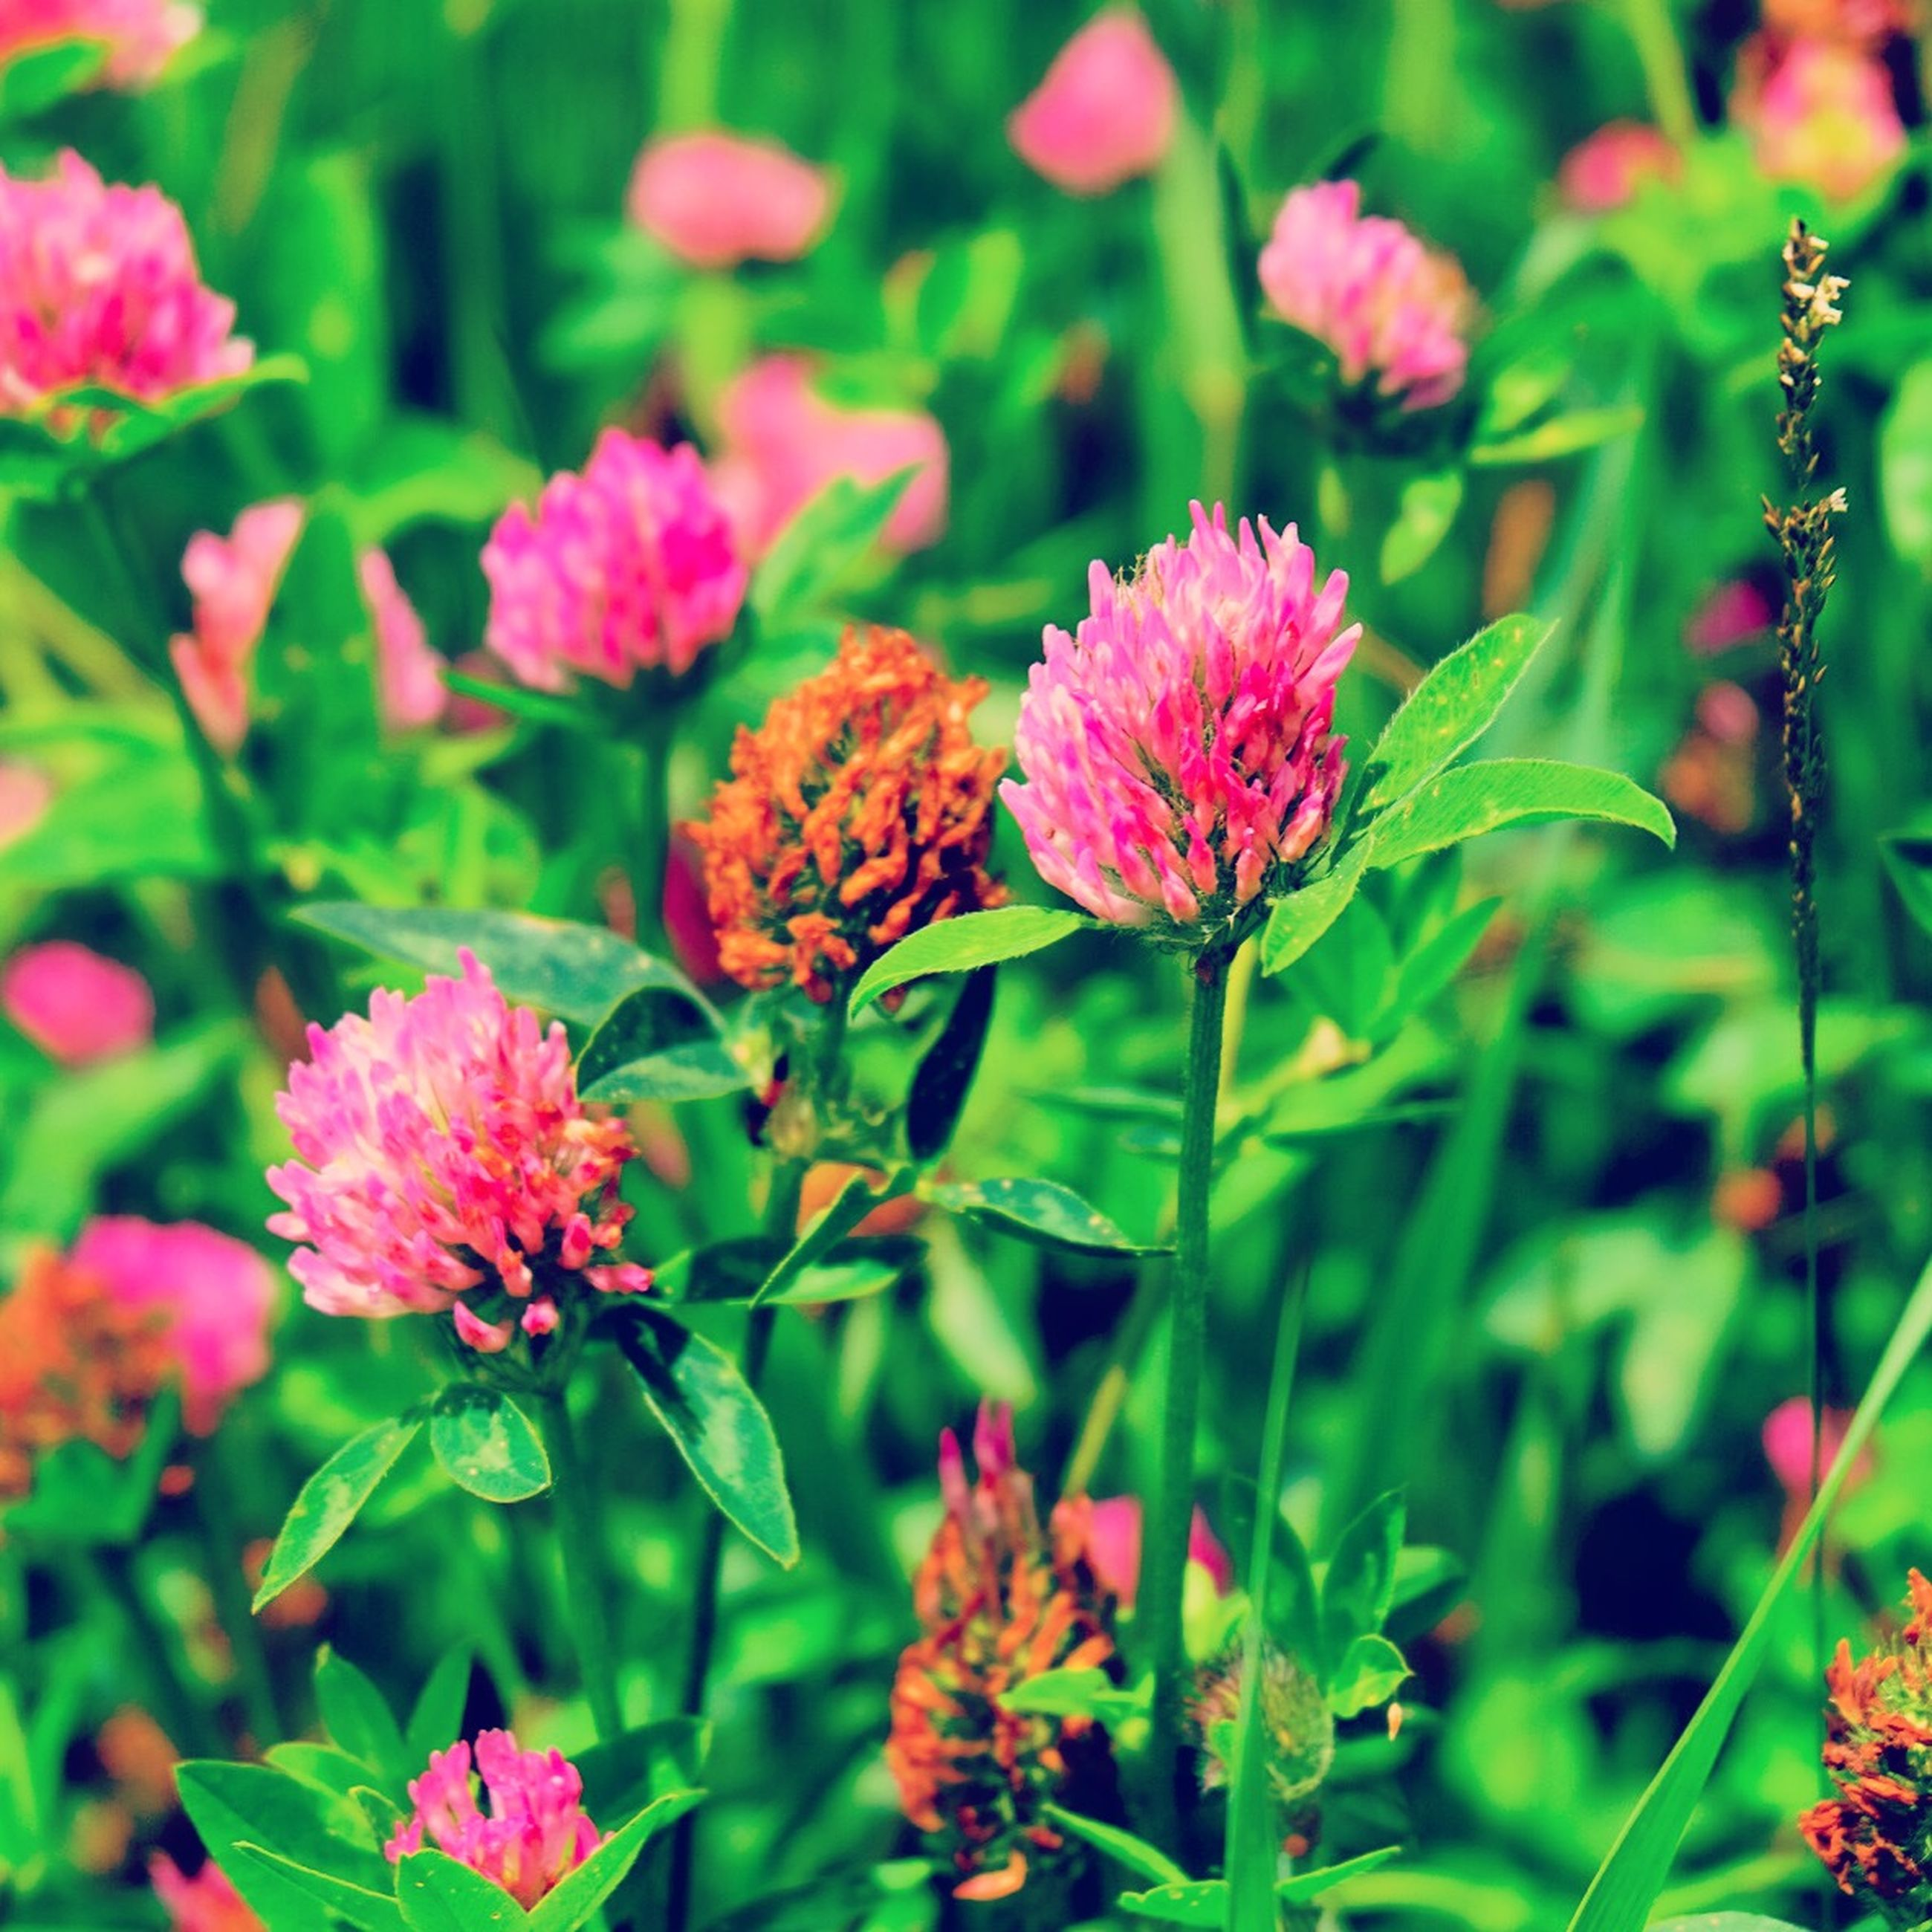 flower, freshness, growth, fragility, plant, beauty in nature, petal, nature, blooming, pink color, flower head, focus on foreground, close-up, green color, leaf, insect, animals in the wild, animal themes, stem, bud